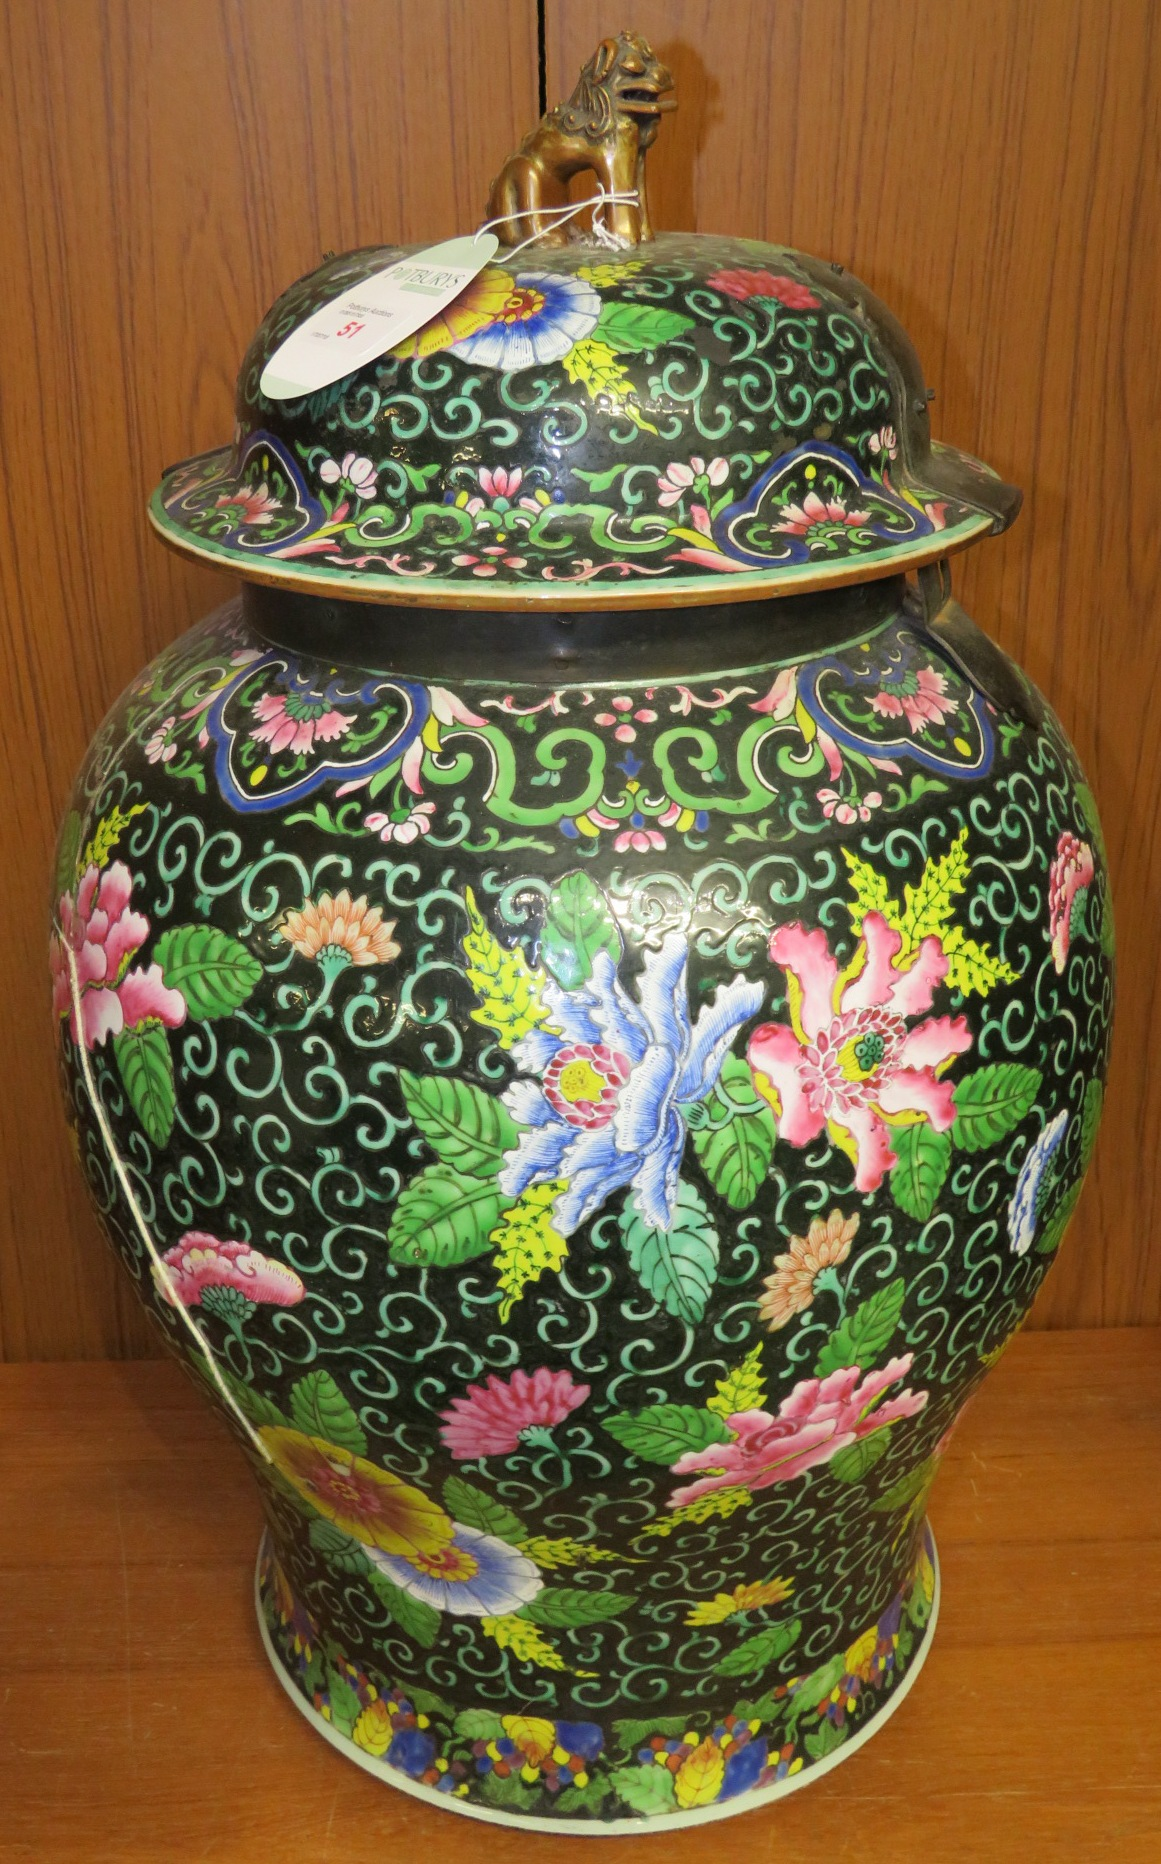 Lot 51 - A large Chinese porcelain famille noire lidded vase, enamelled with pink, blue and yellow flowers